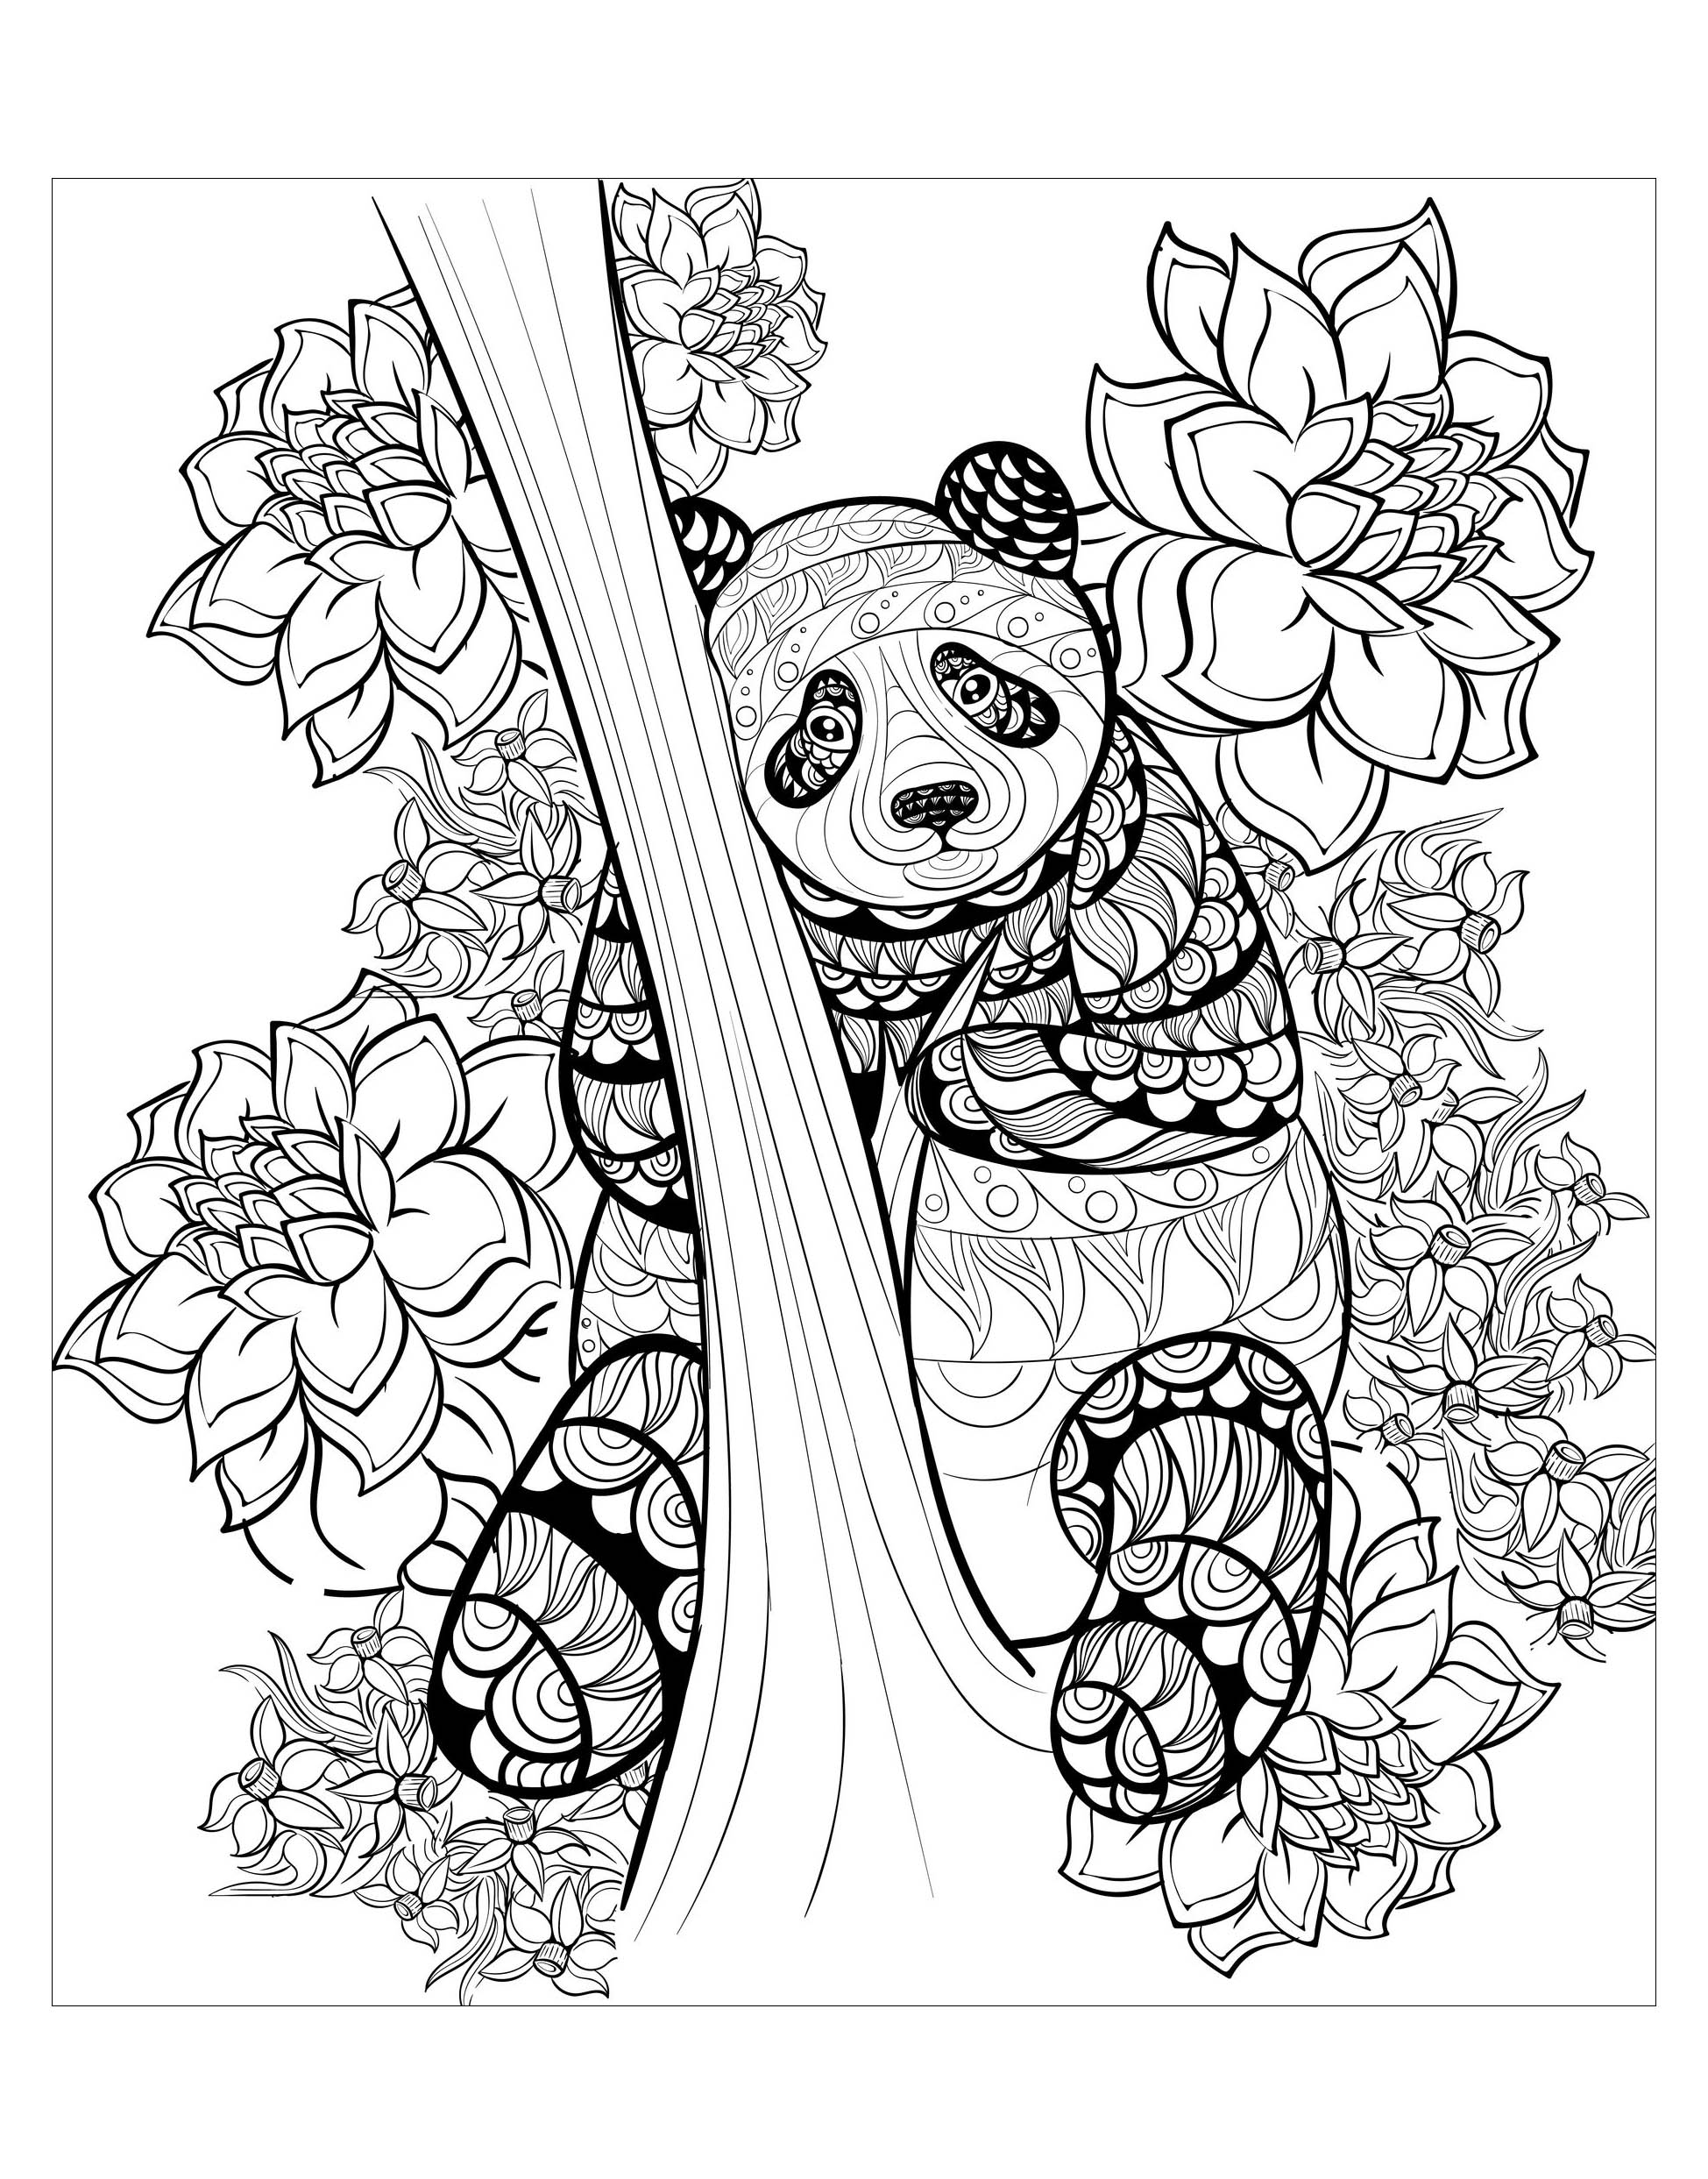 Incredible Pandas coloring page to print and color for free